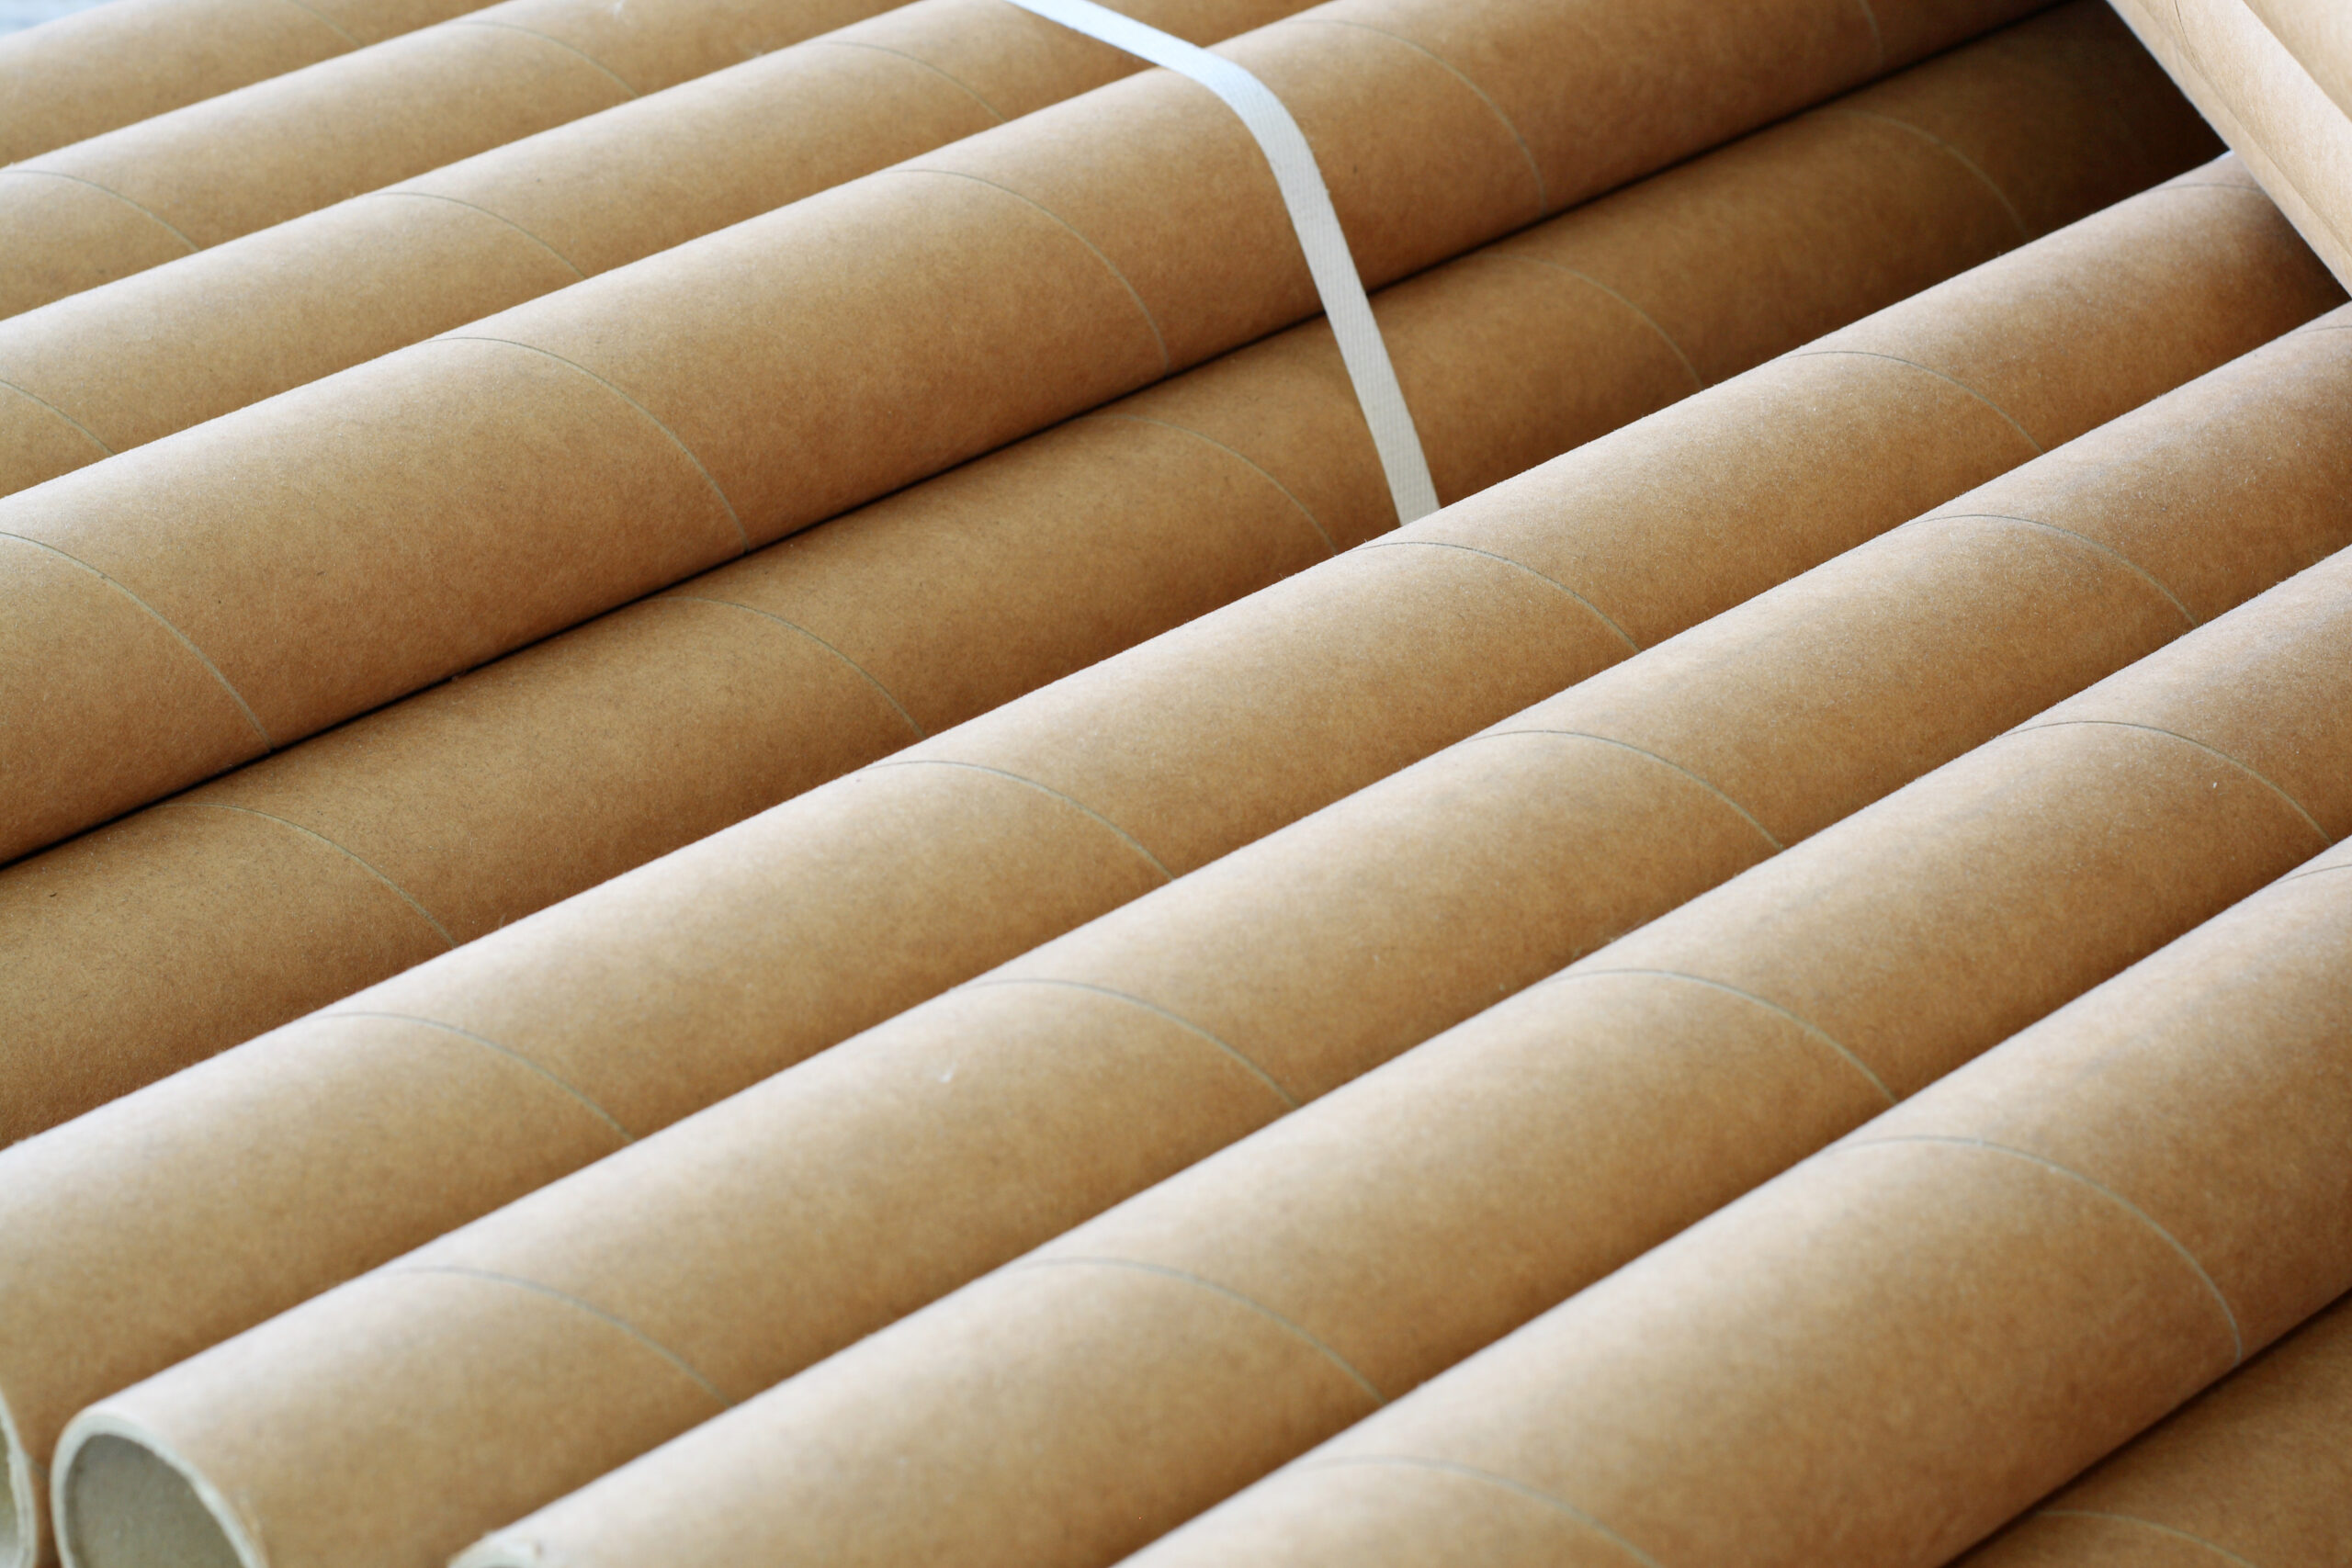 close-up of long brown paper tubes